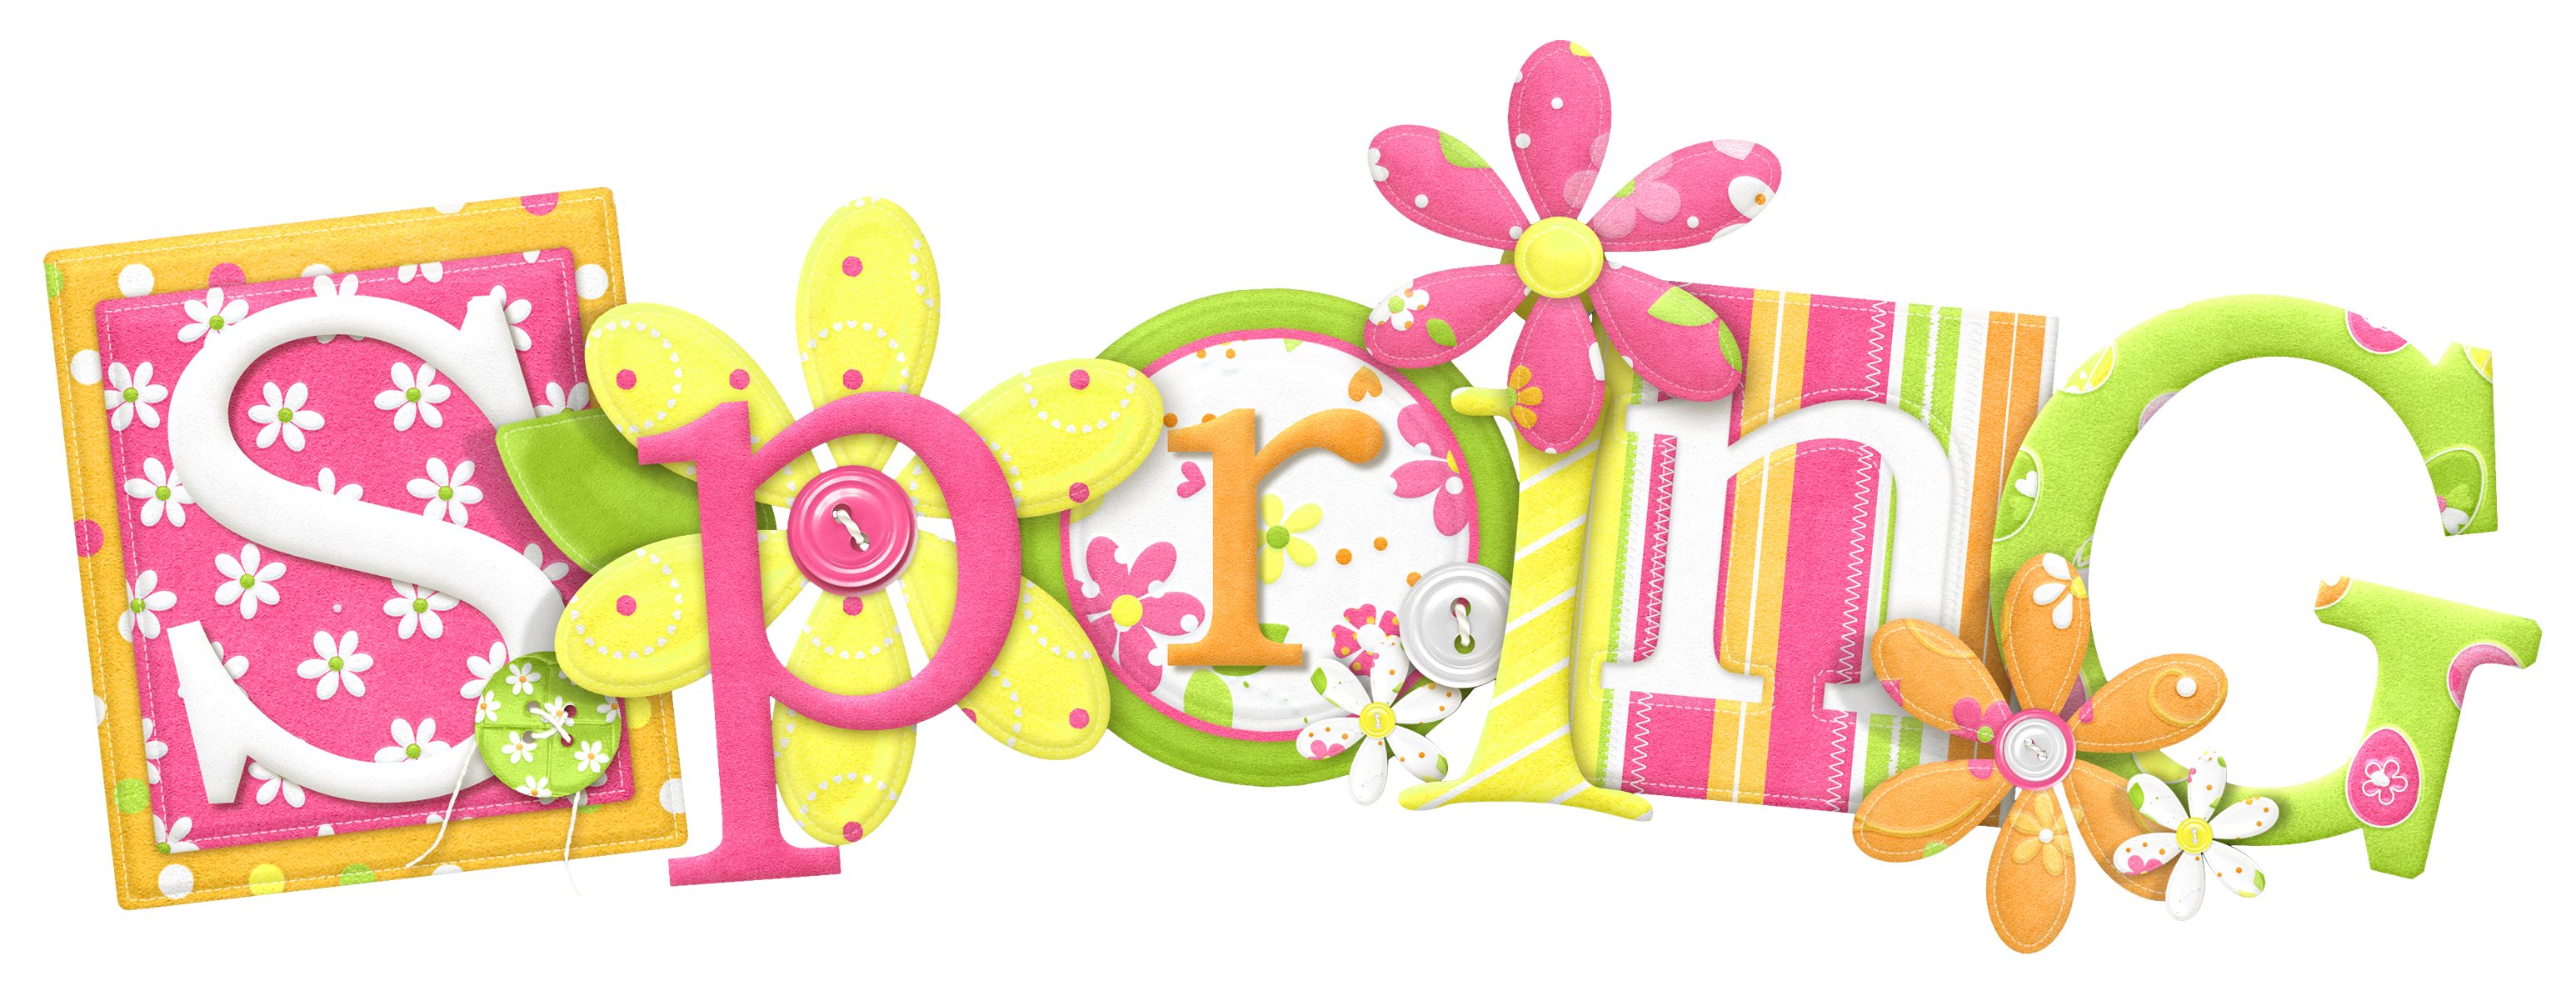 Free happy spring clip art clipart images gallery for free.